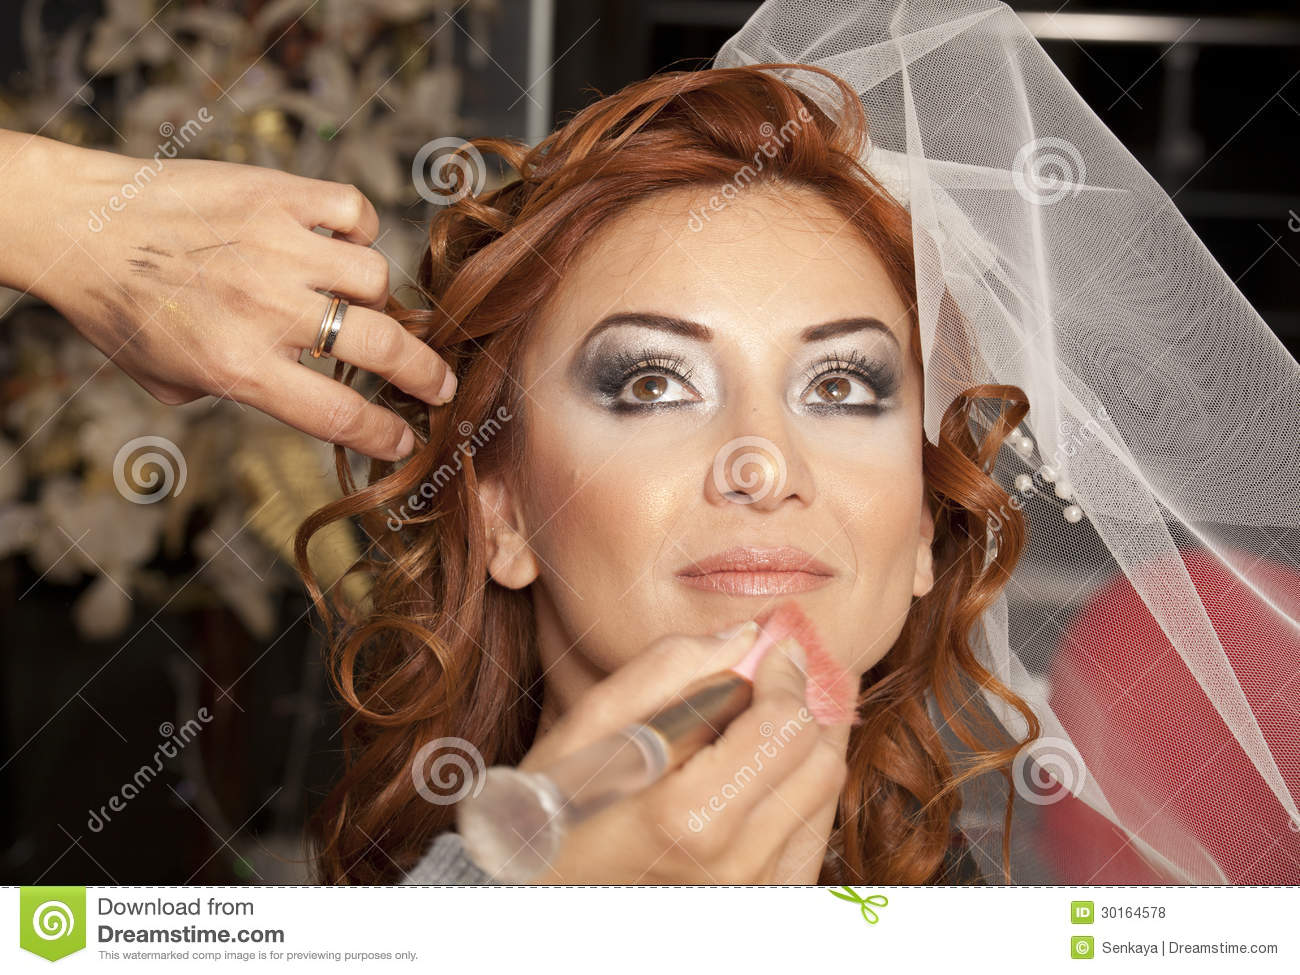 Will young beautiful bride preparing mistaken